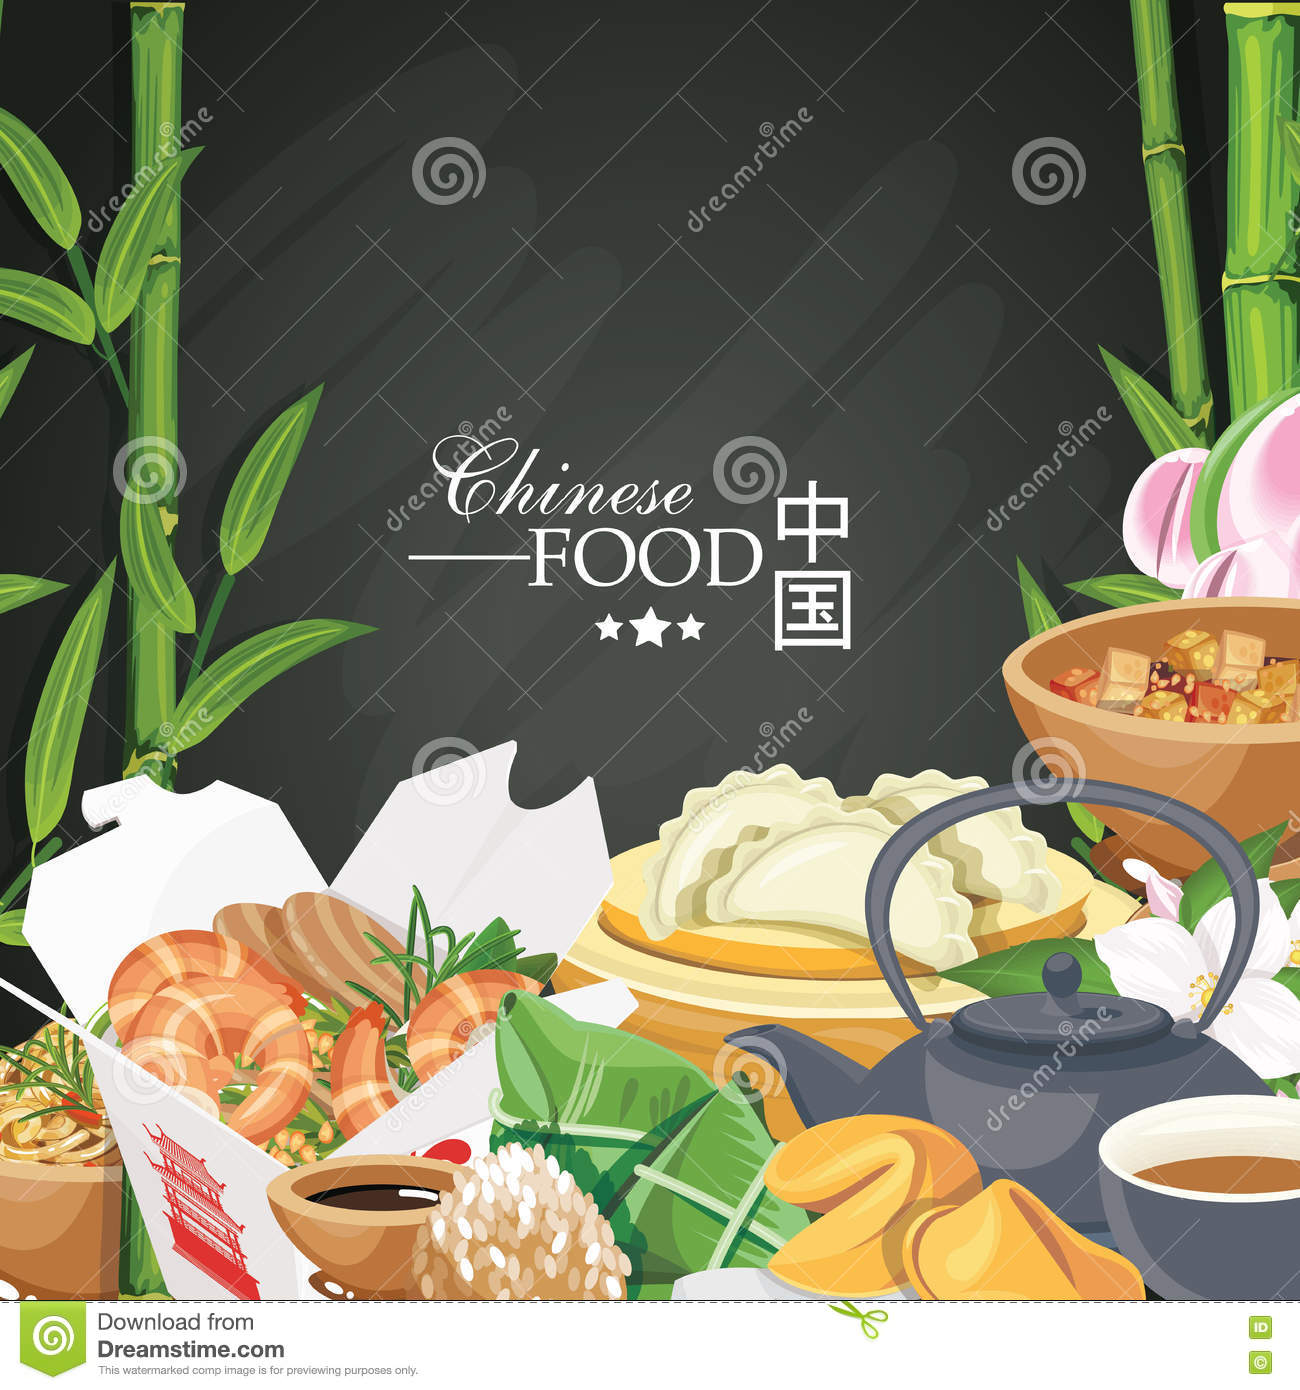 Dumplings cartoons illustrations vector stock images for Asia asian cuisine menu